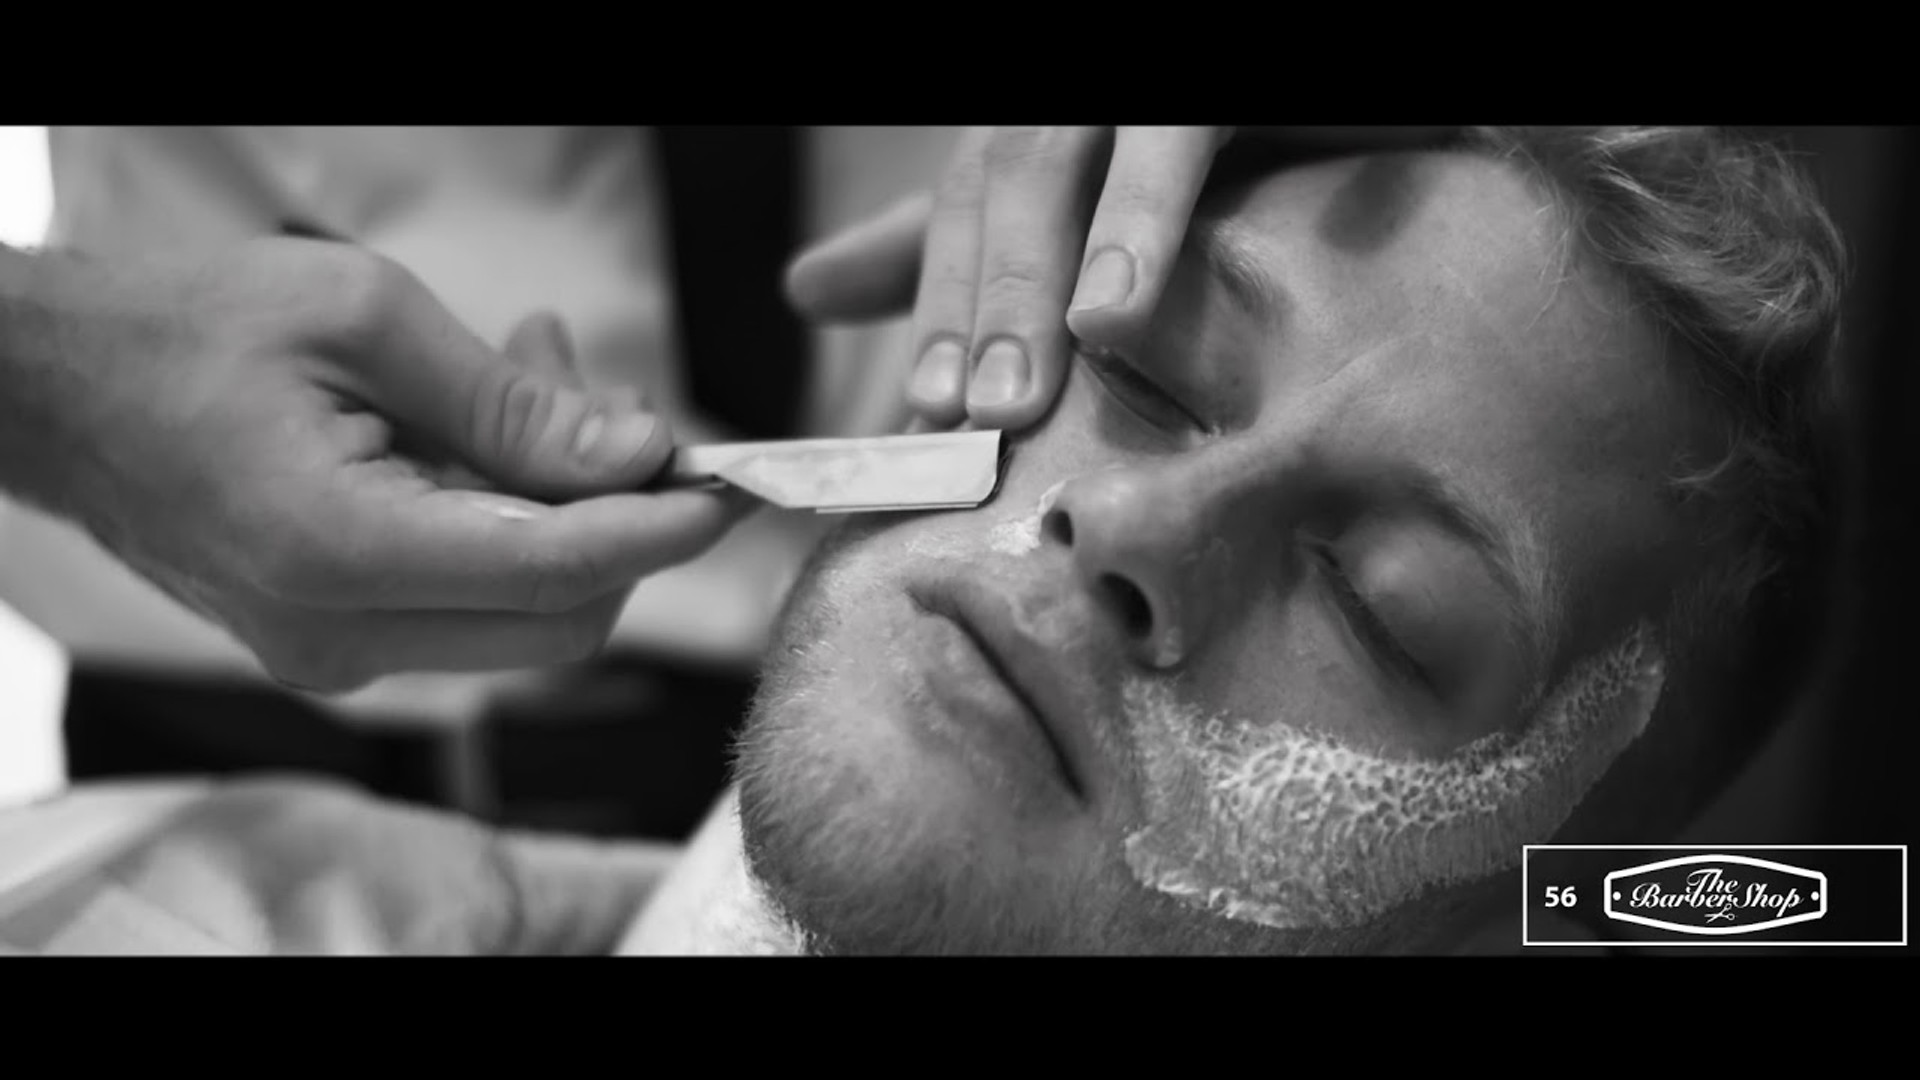 The Barber Shop Bexhill Promo